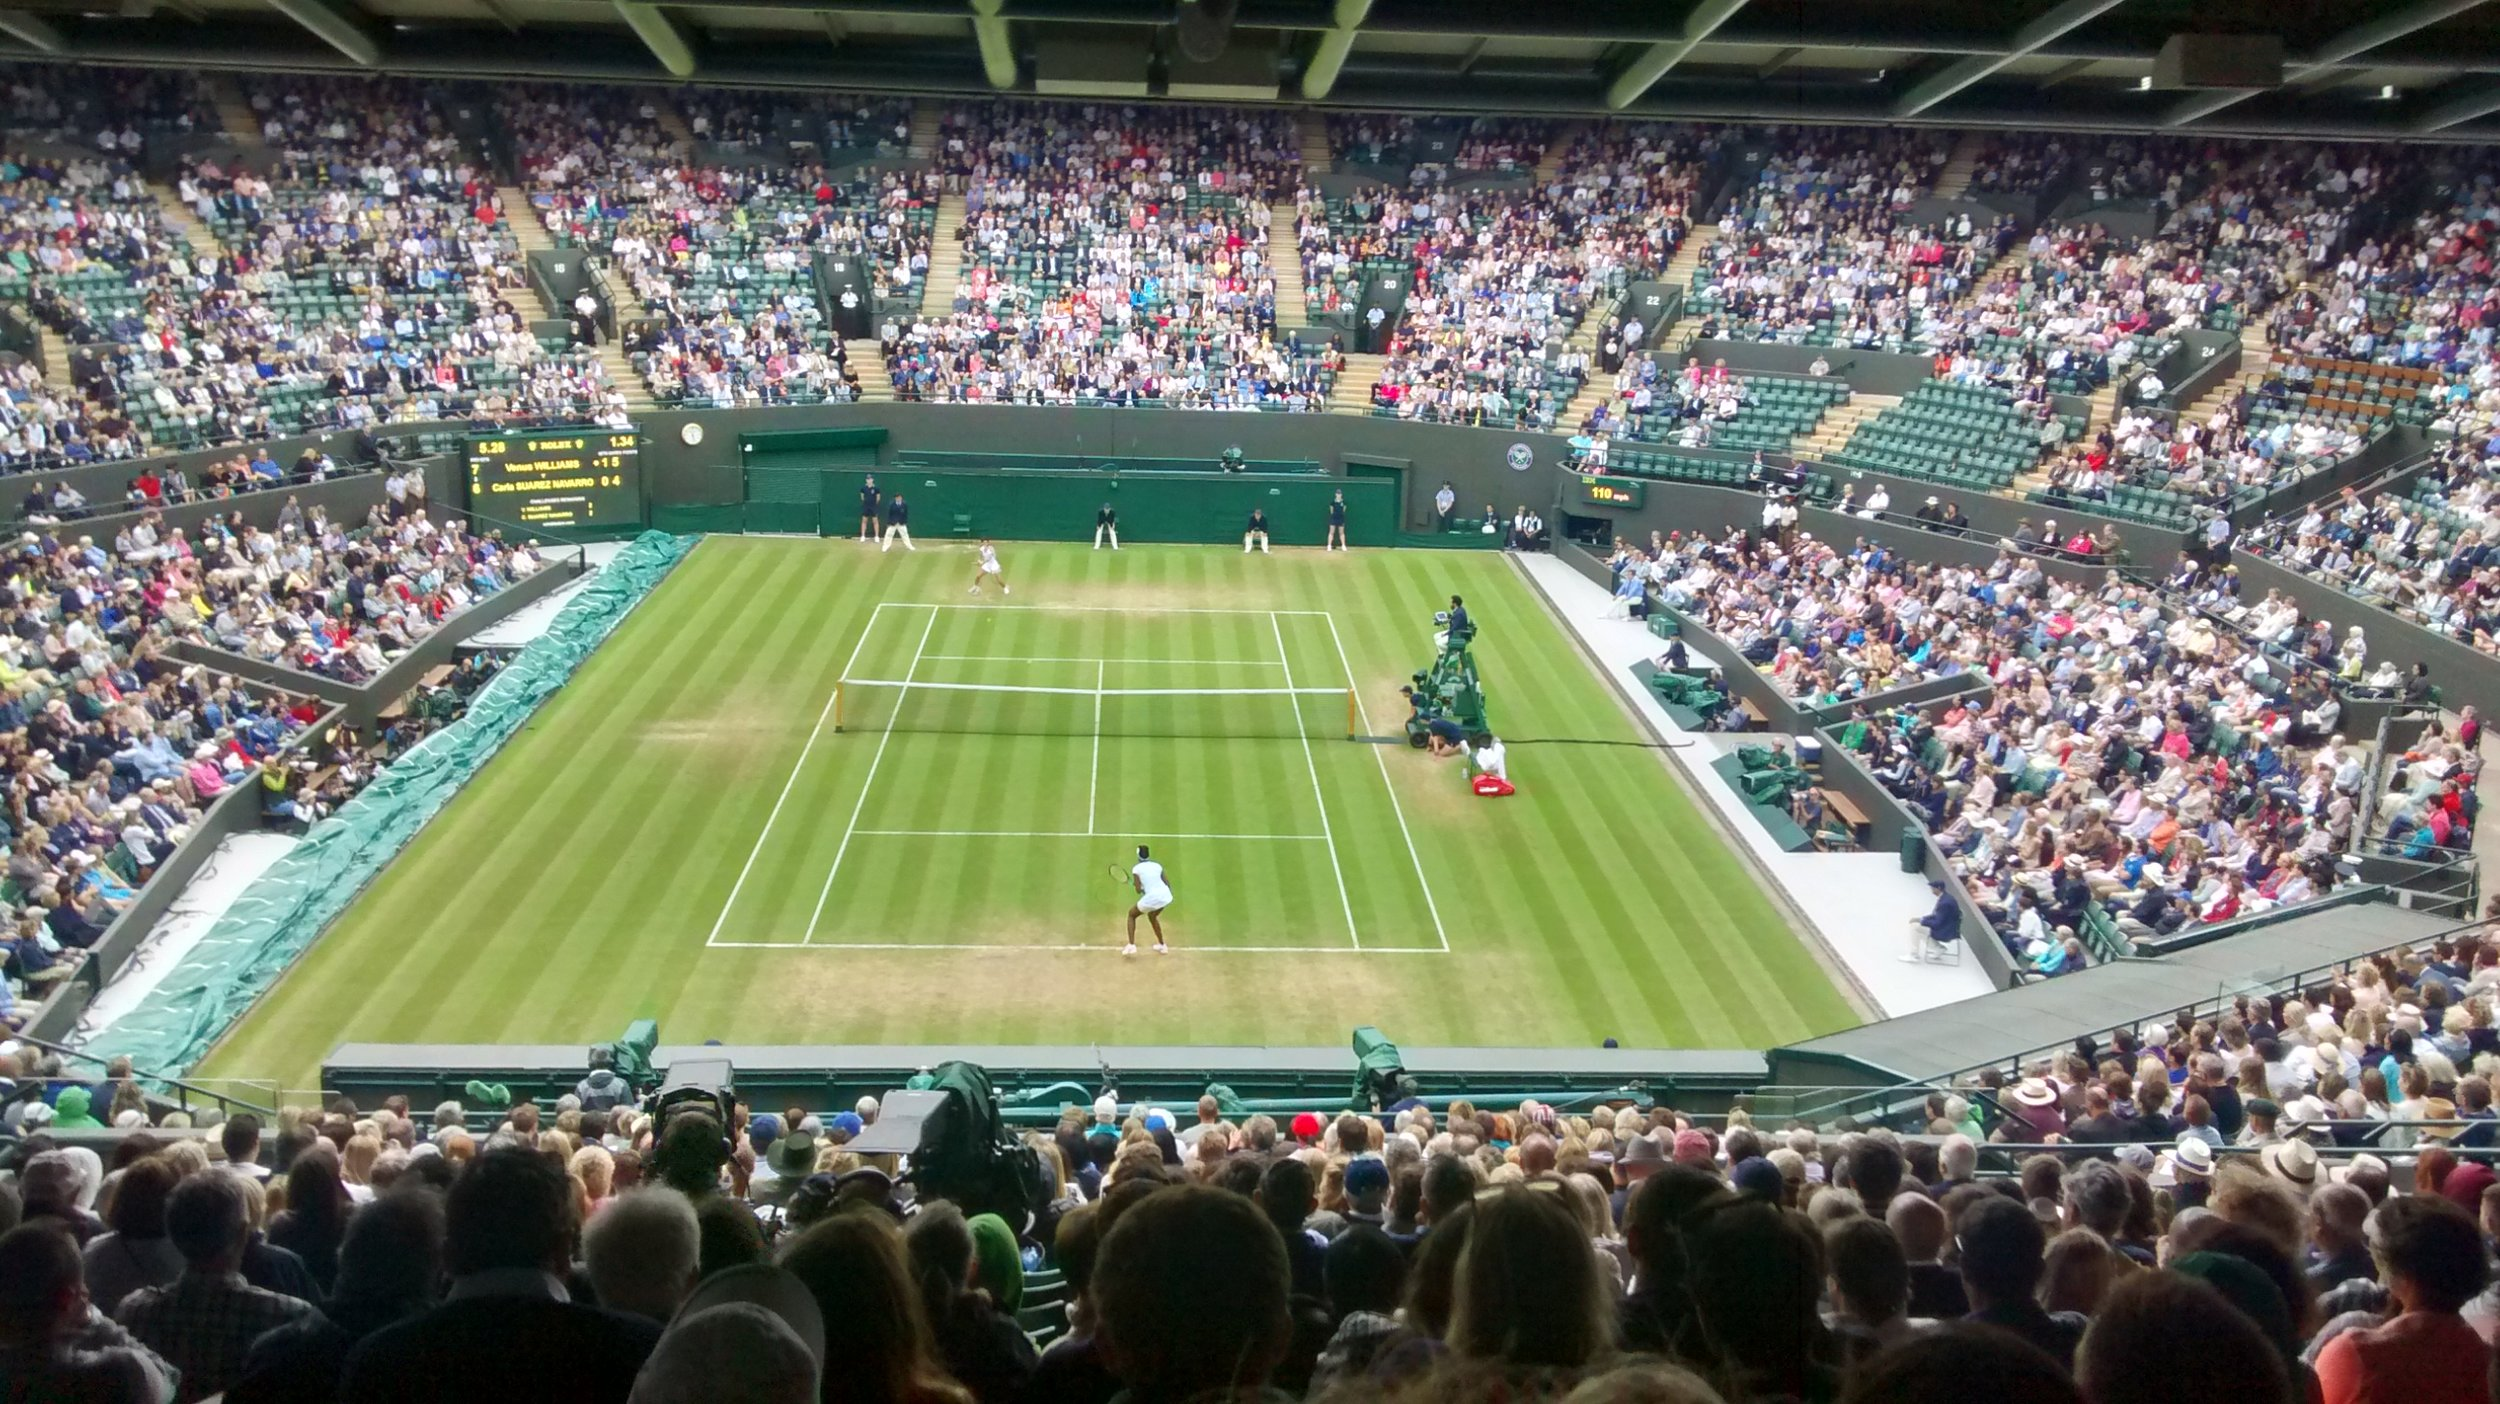 Resale Tickets to the best courts - Later in the day we can buy resale tickets to the two best courts to see the very best players in the world for only £10 extra!(Picture: Resale tickets to see Venus Williams two year's ago)